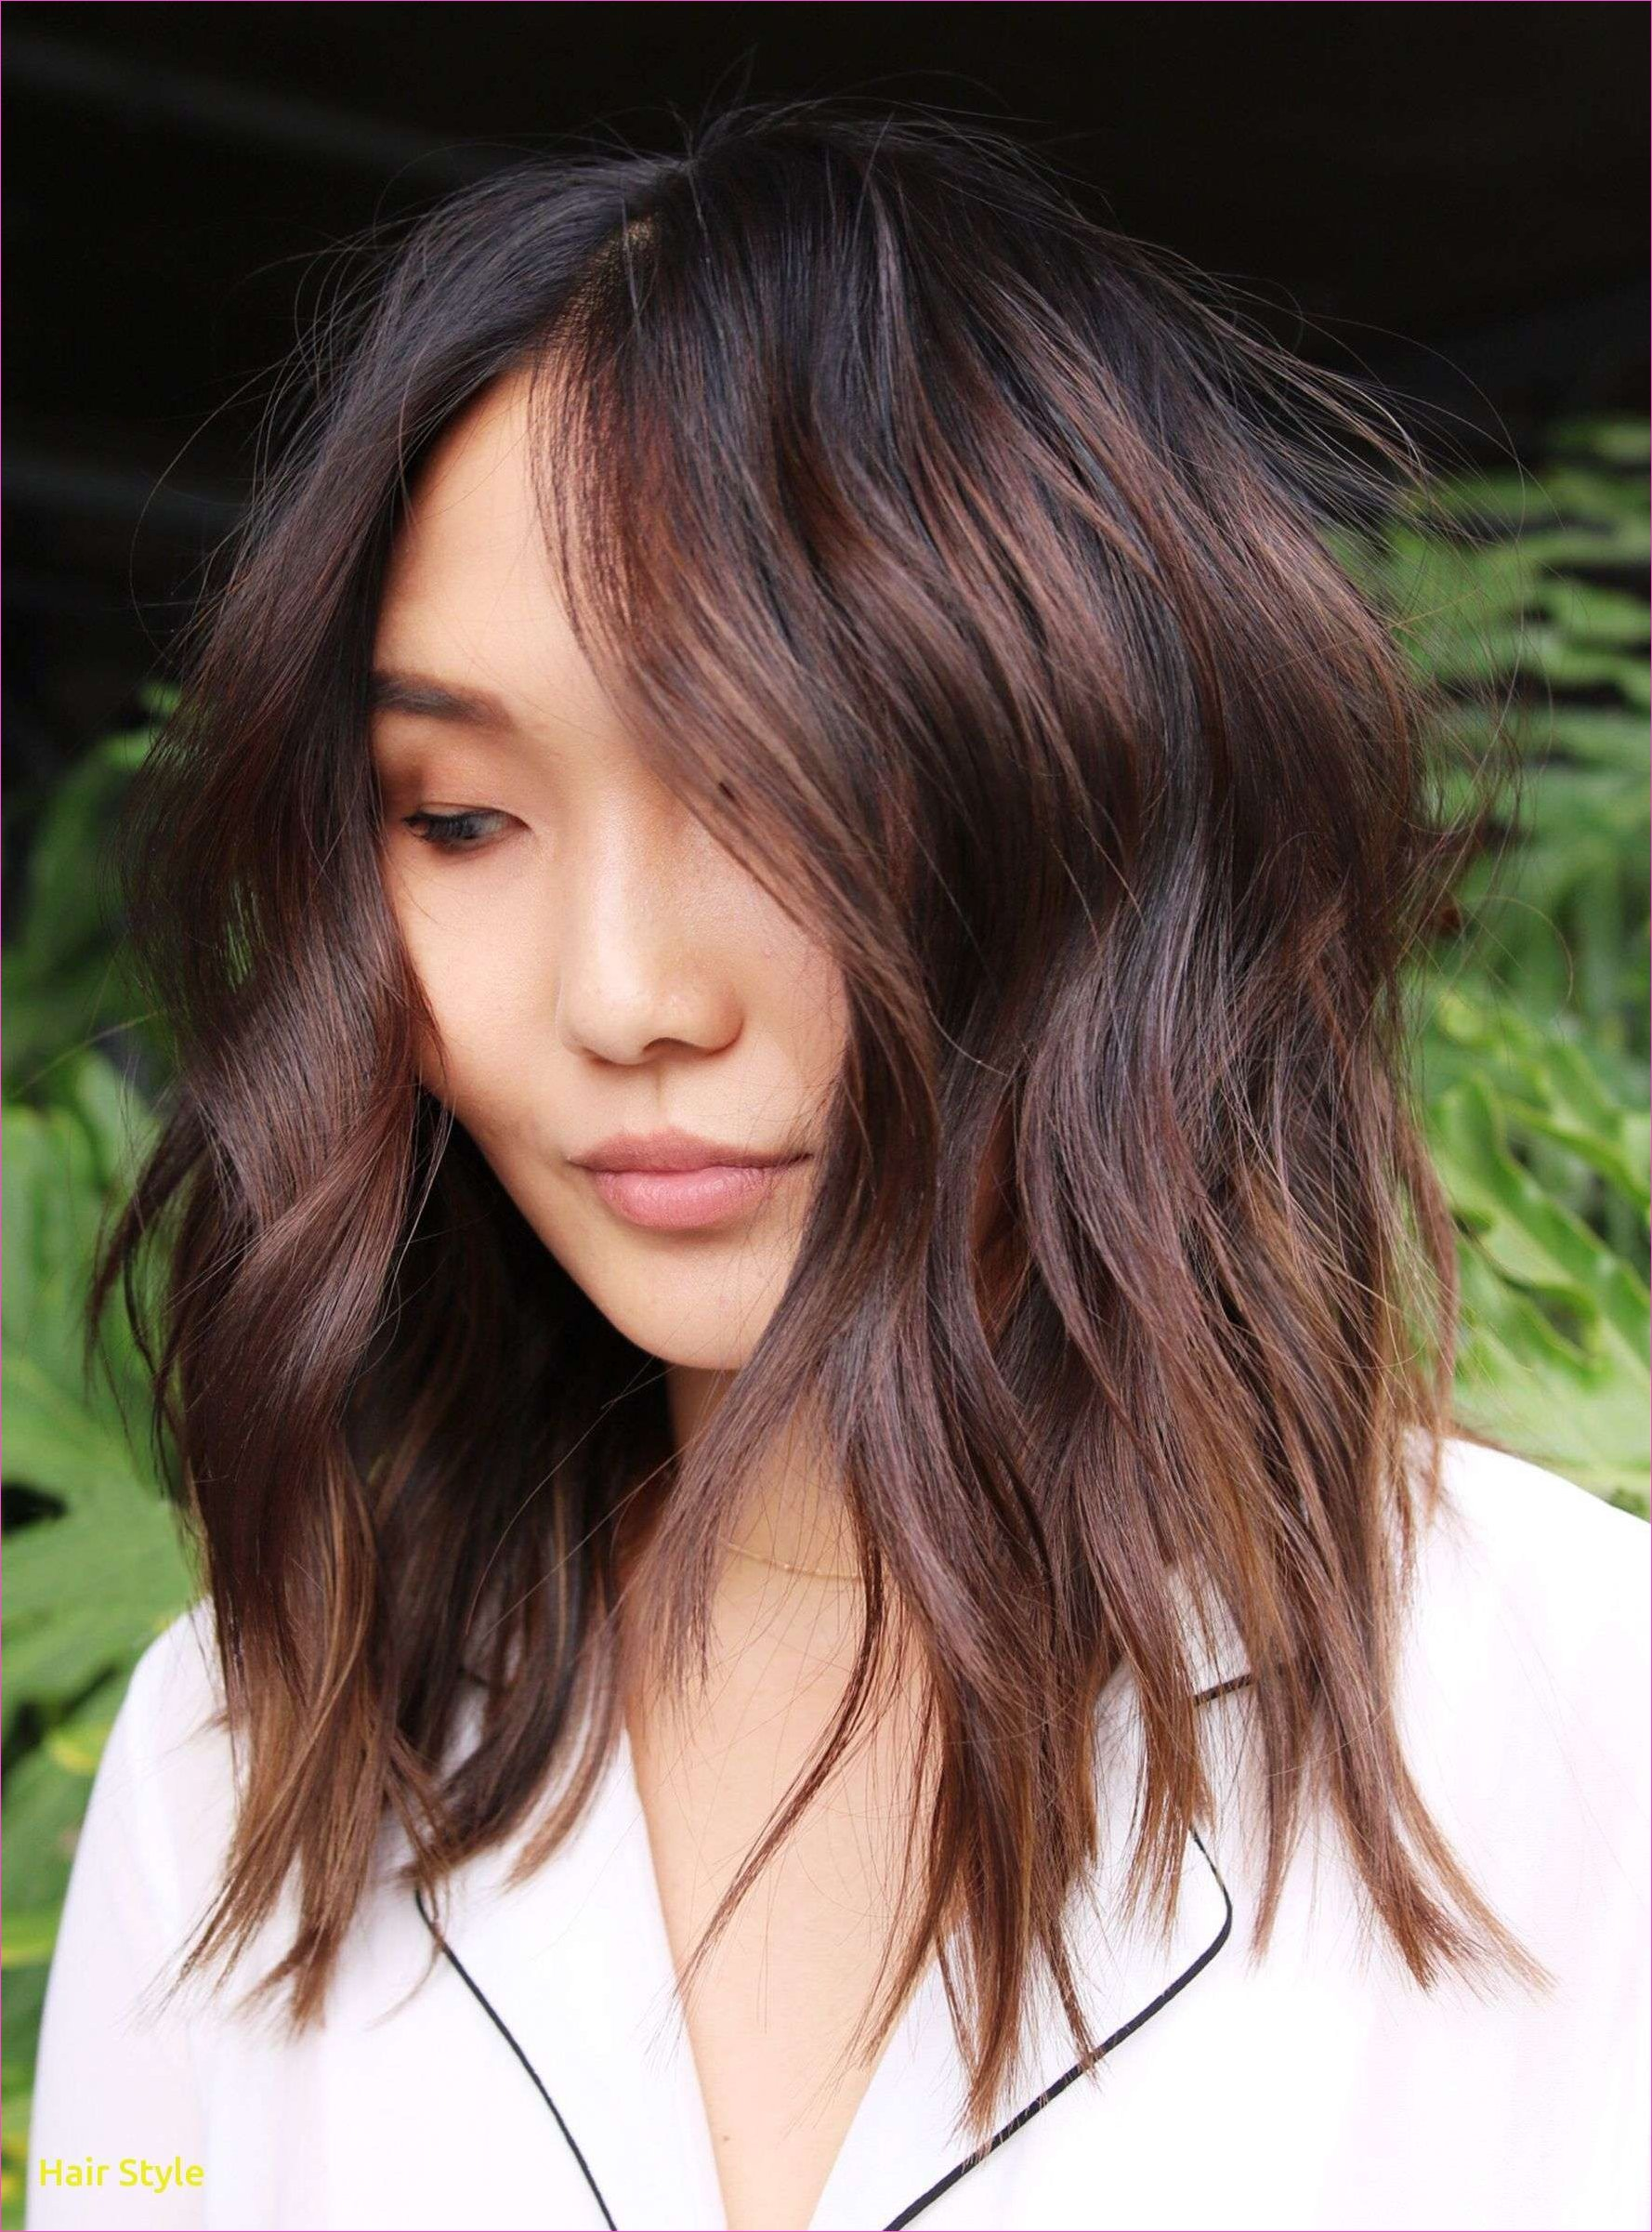 Neue Sommer 2019 Frisuren | Haartrends 2018 | Pinterest | Hair, Hair